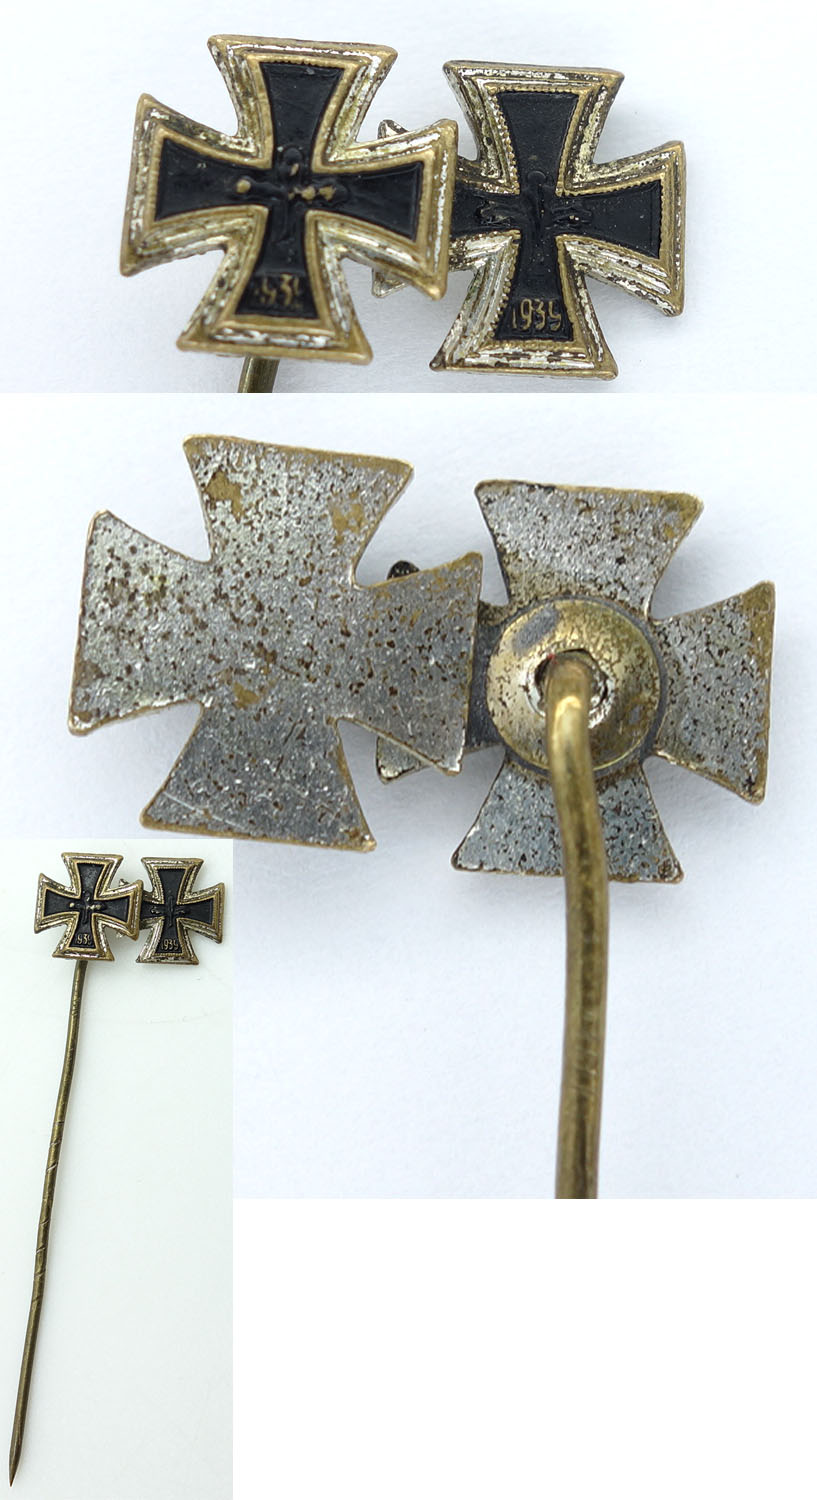 1957 Issue 1st and 2nd Class Iron Cross Stickpin